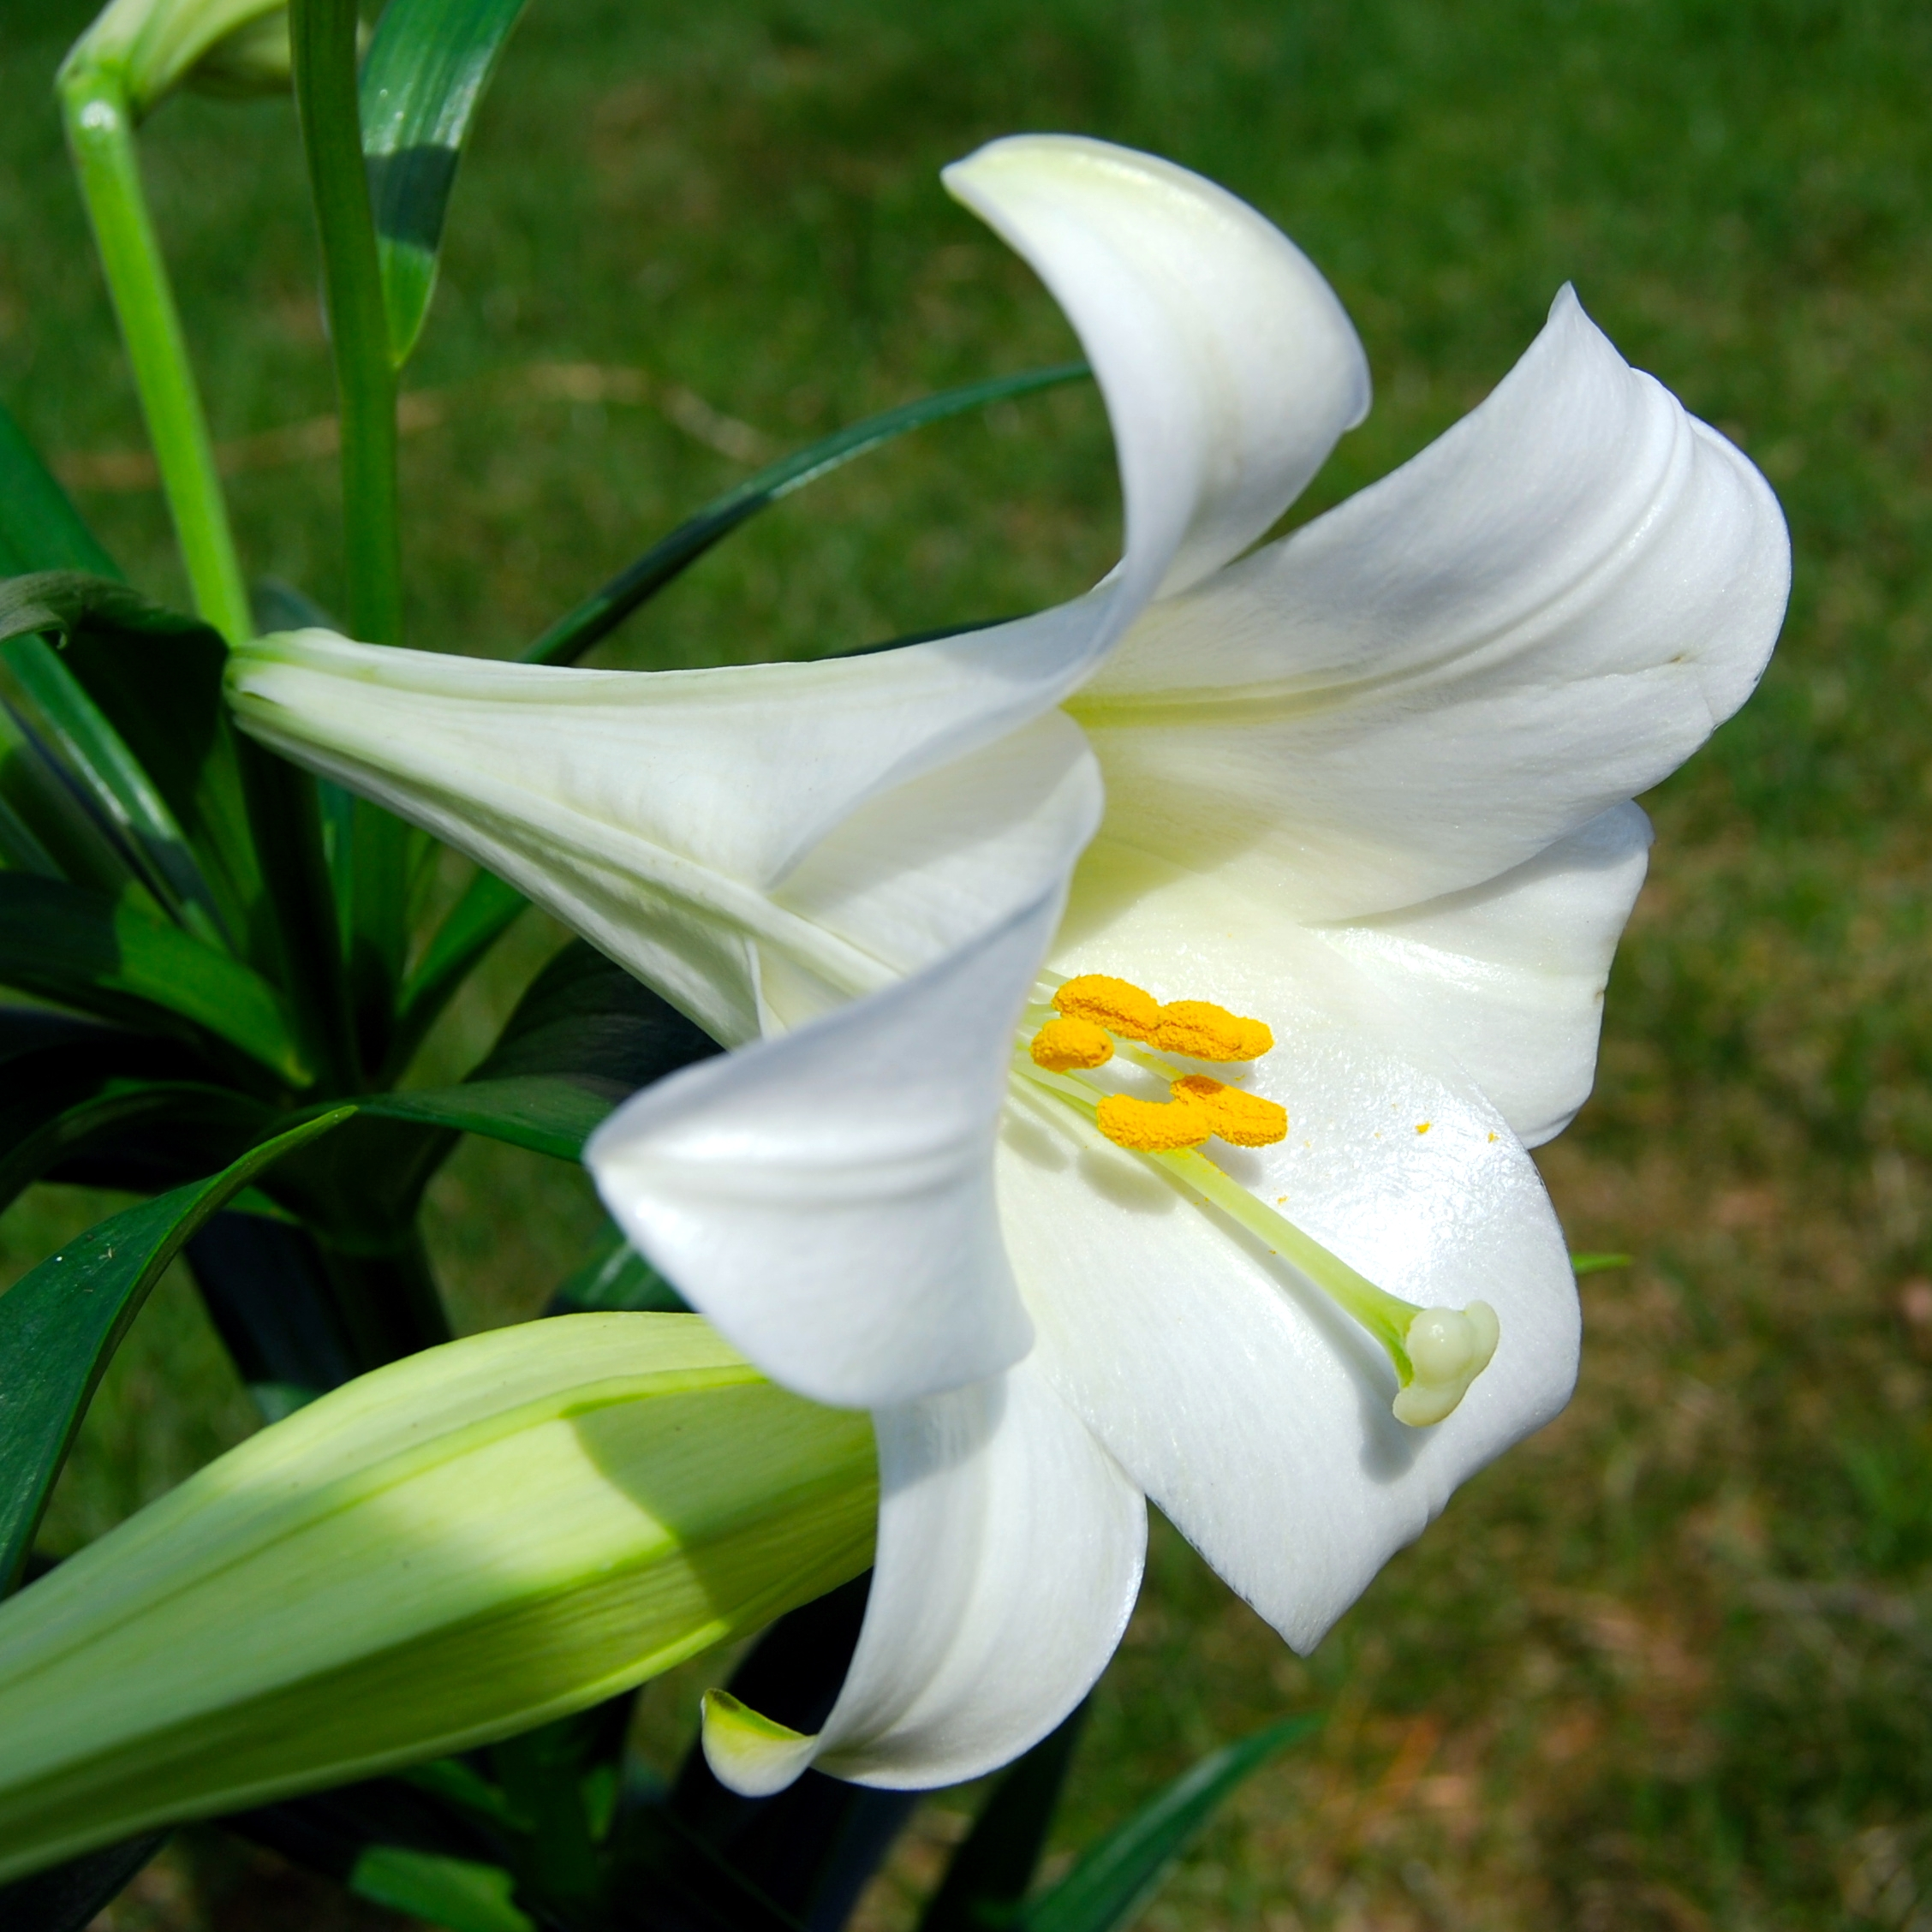 Lilies beautiful but deadly the easter lily is the best known culprit but also the tiger lily japanese show lily rubrum lily numerous hybrids and day lilies have been associated izmirmasajfo